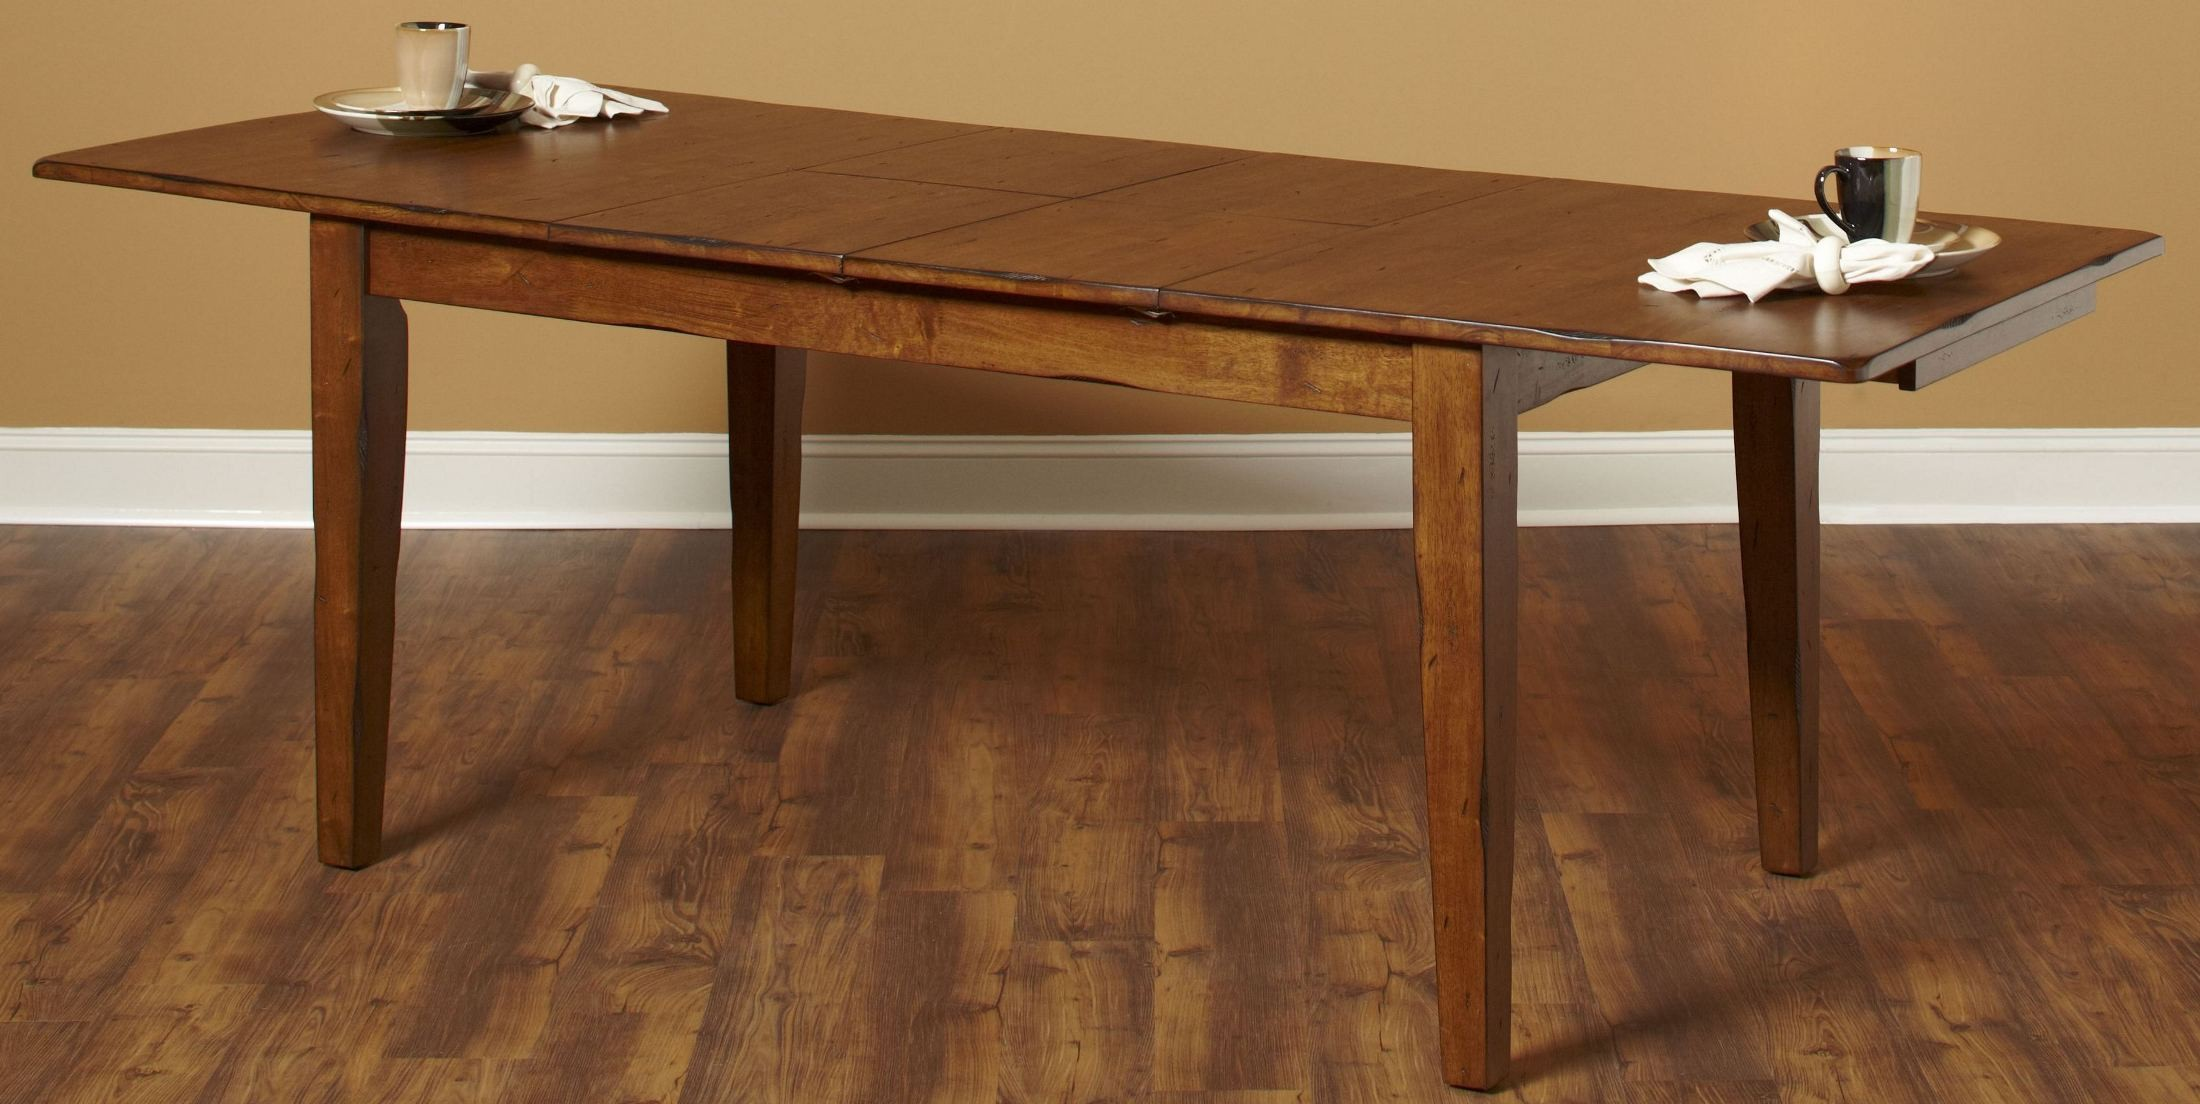 Distressed White Oak Dining Chairs: Overland Distressed Oak Extendable Rectangular Dining Room